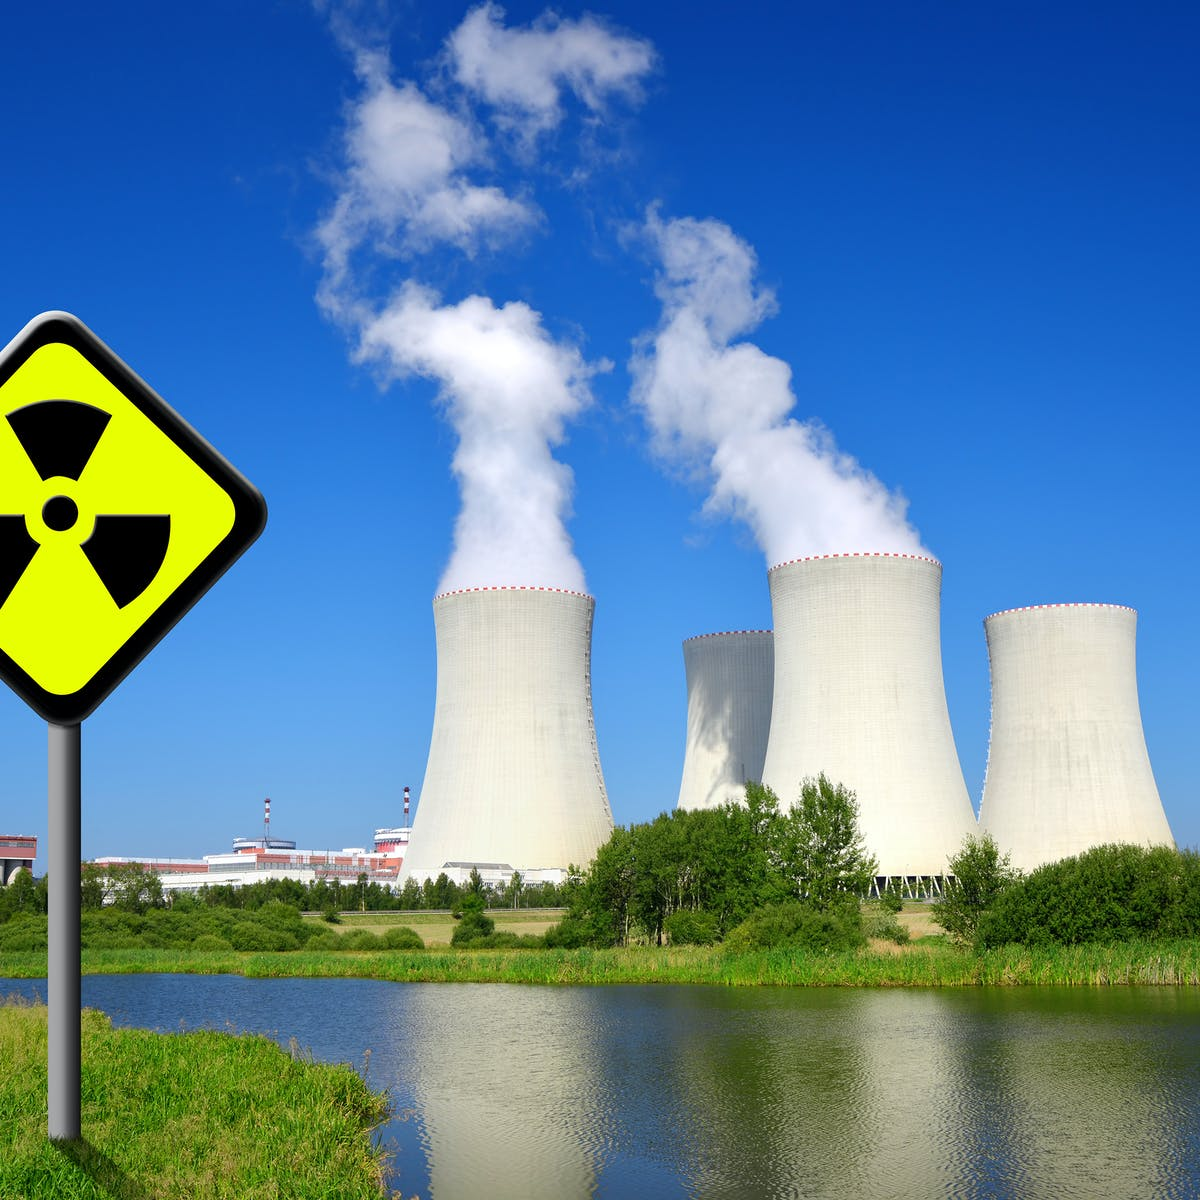 Small nuclear power reactors: Future or folly?